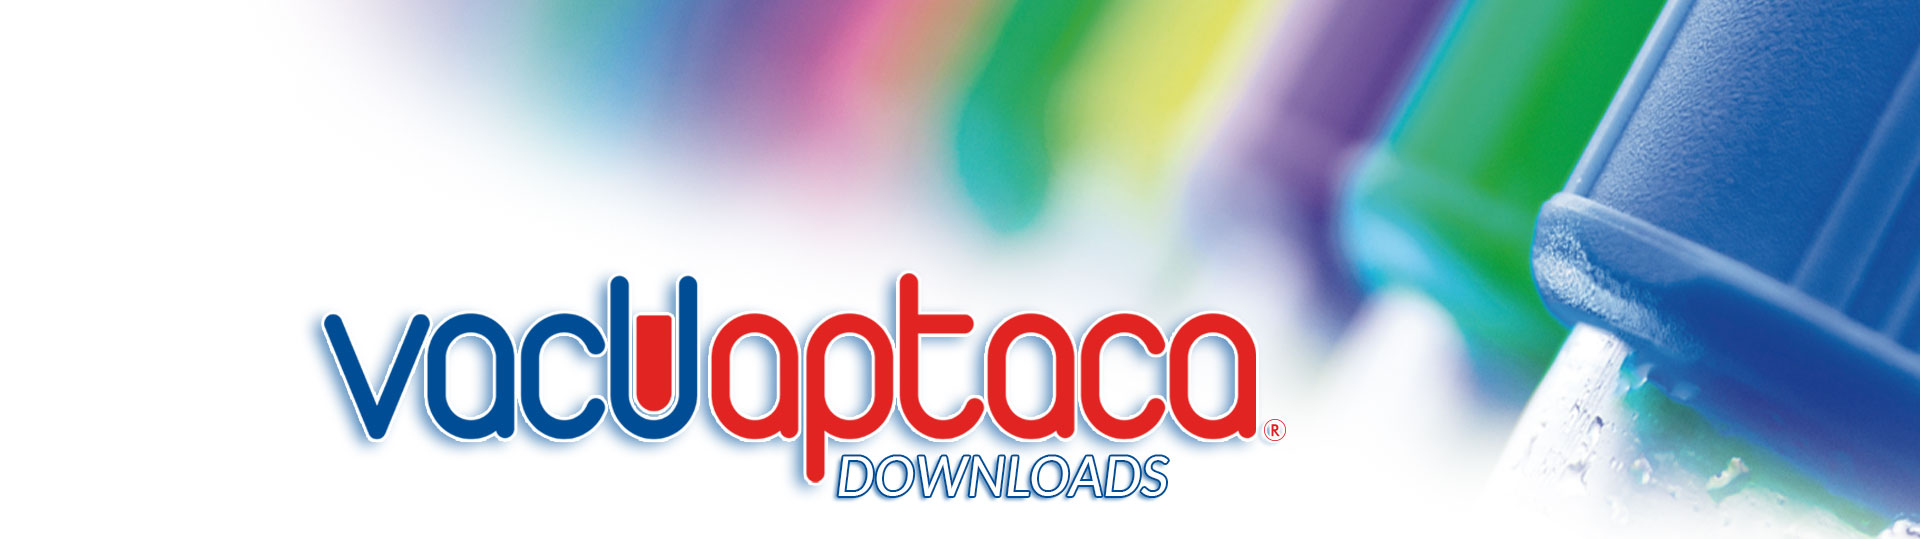 header downloads